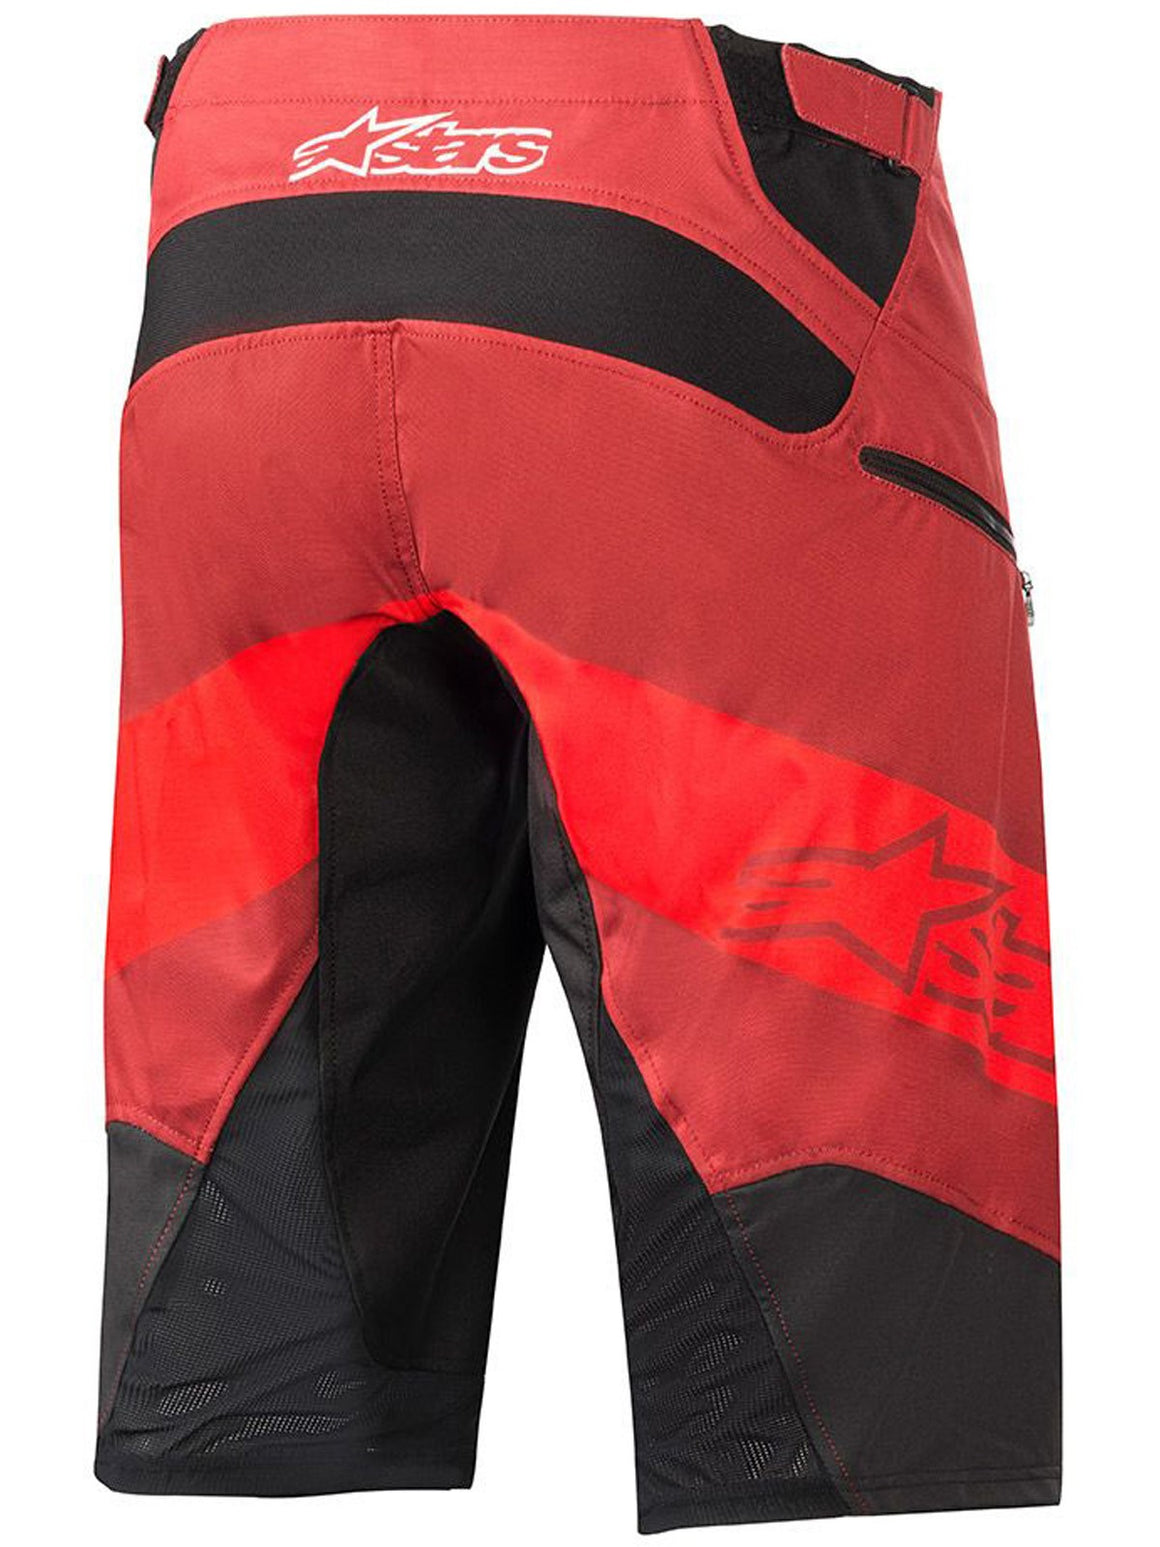 Alpinestars Racer Shorts, Mens - bright red/burgundy